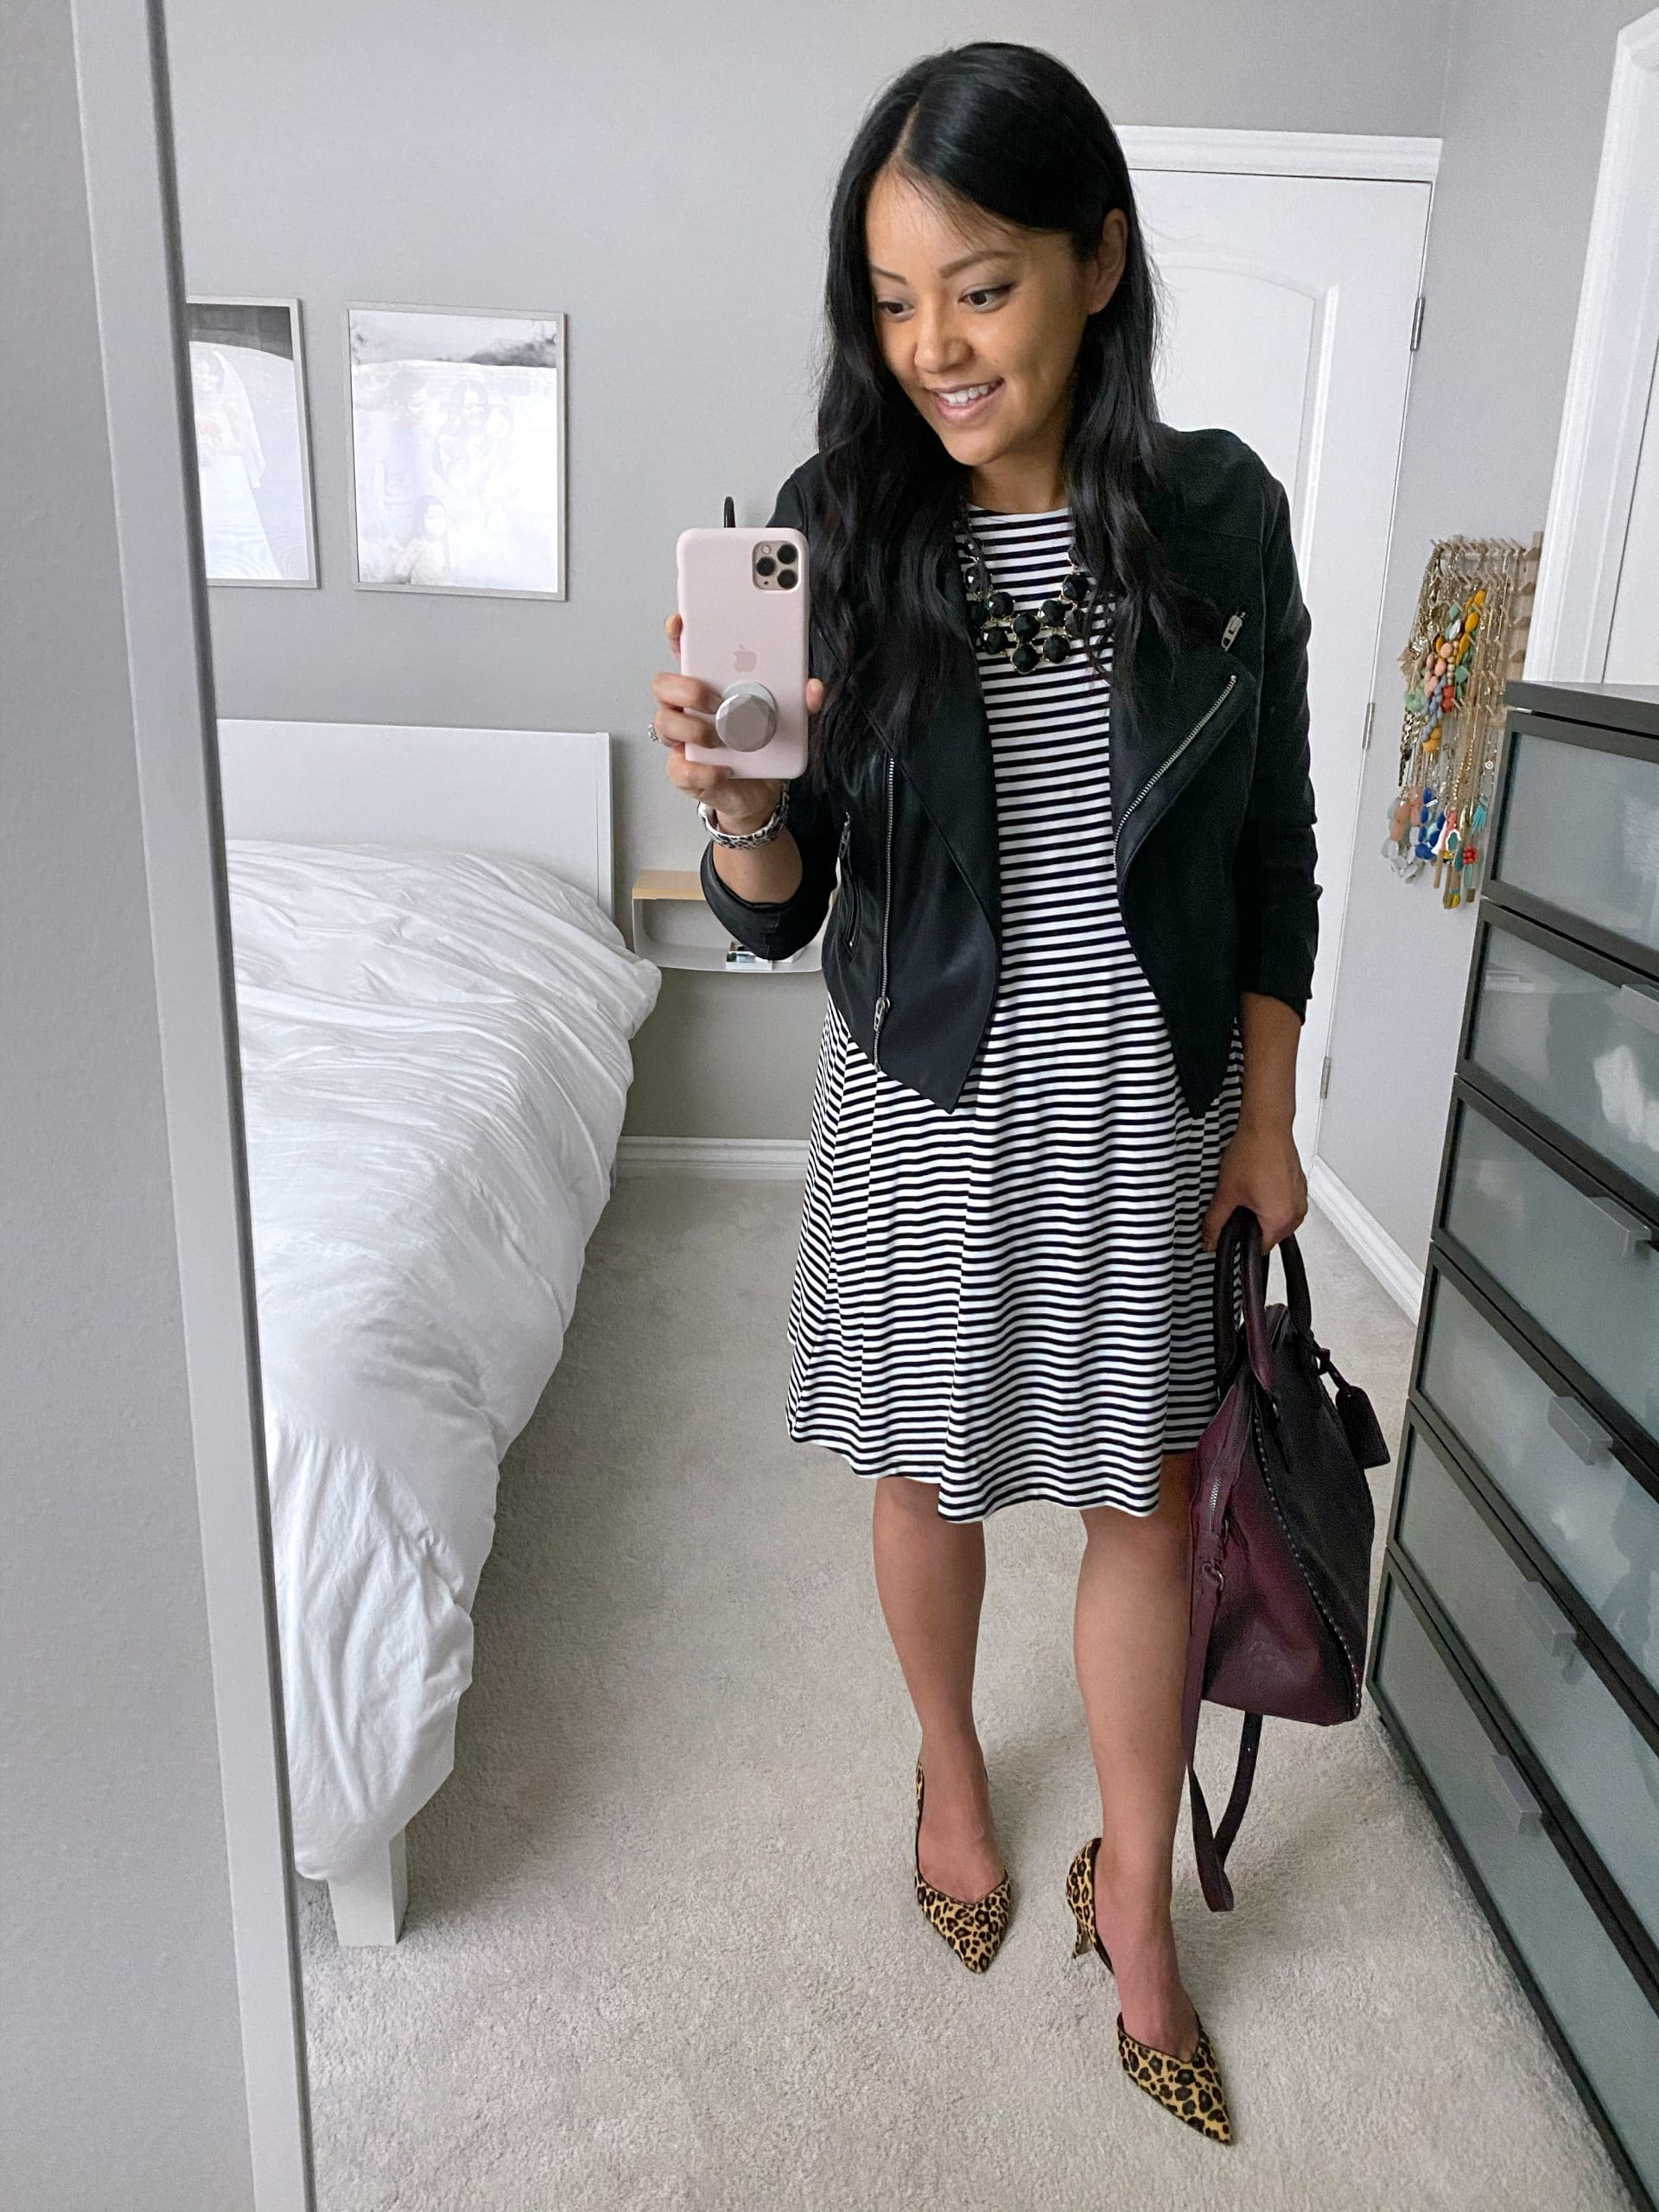 Striped Dress Outfit: black and white striped swing dress + black moto jacket + leopard print heels + maroon bag + black statement necklace